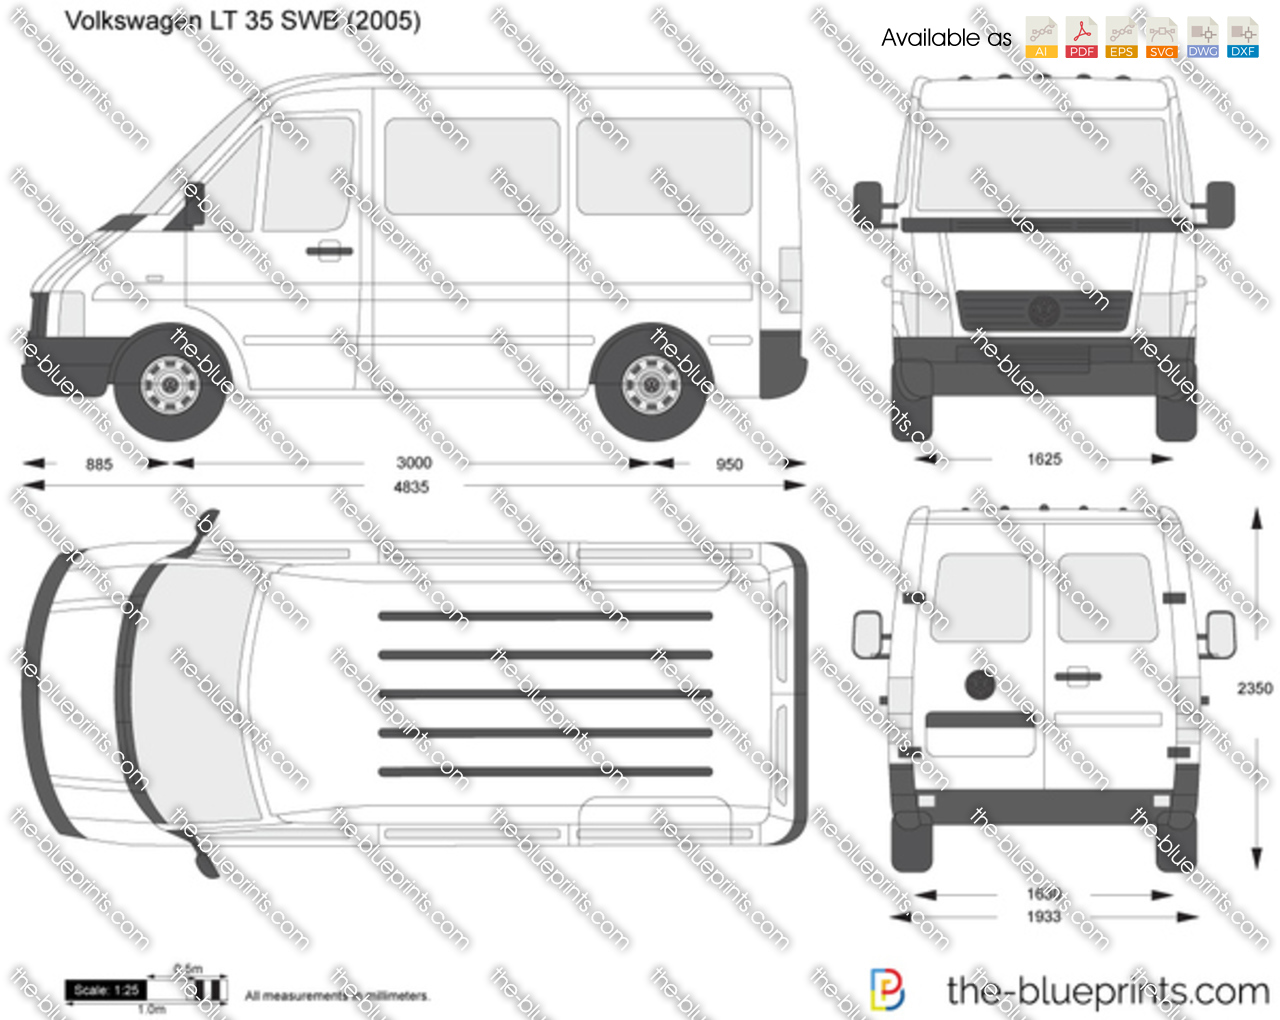 volkswagen lt 35 swb vector drawing